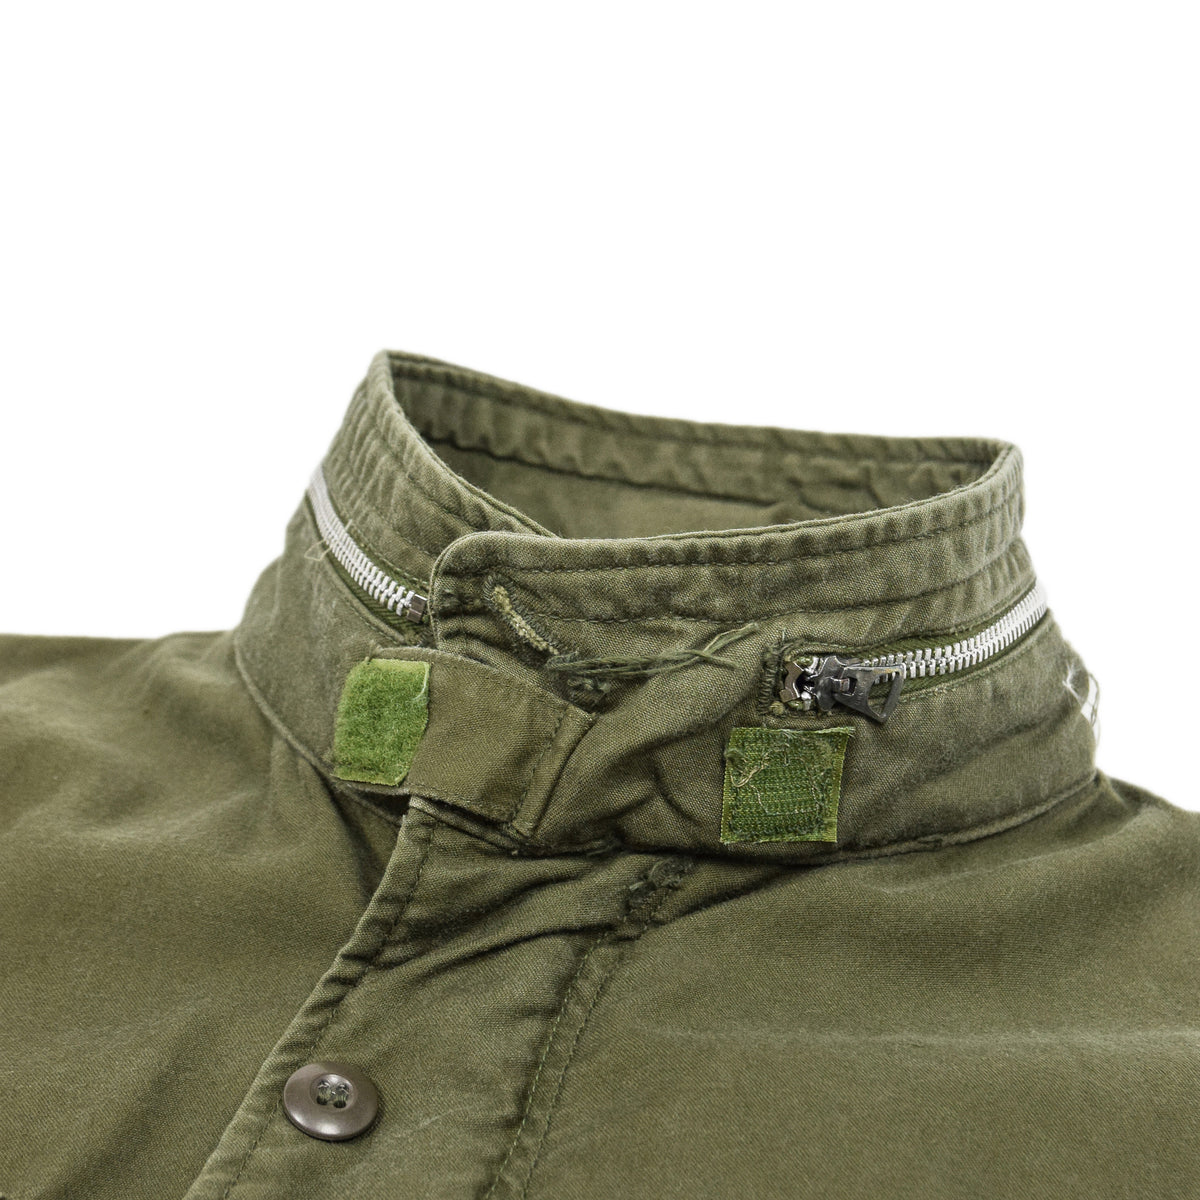 Vintage 60s Vietnam M-65 Man's Field Sateen 0G-107 Green US Army Coat M Short collar detail